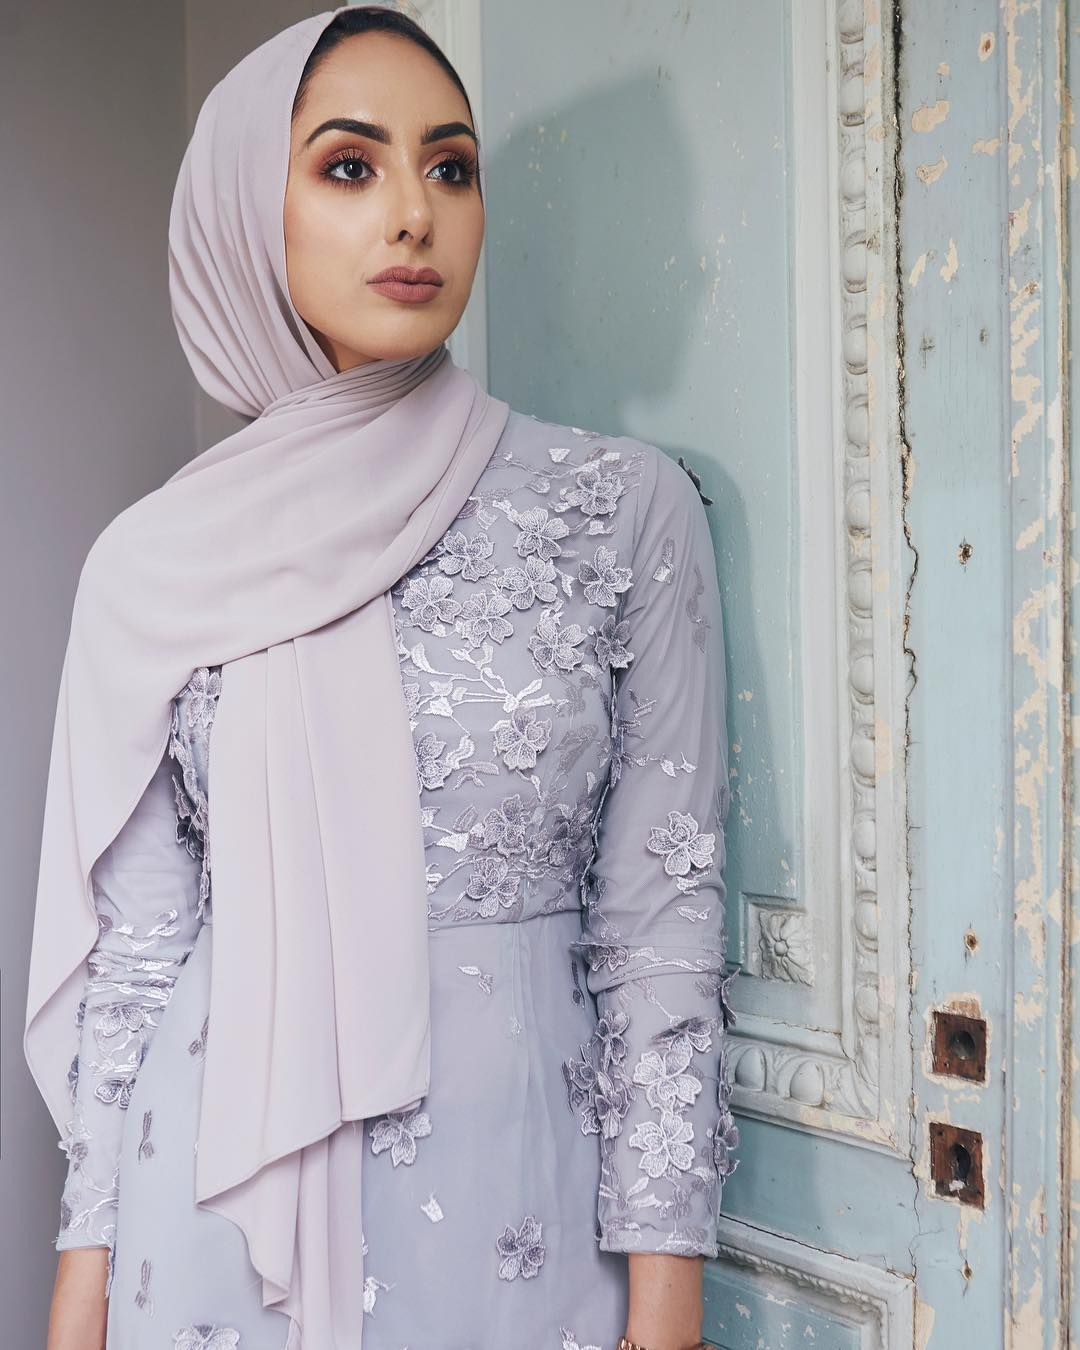 eddfe950cbf933 Our #INAYAHGIRL in our Silver Scattered Floral Dress. An ethereal design  embellished with silver-toned floral motifs. www.inayah.co